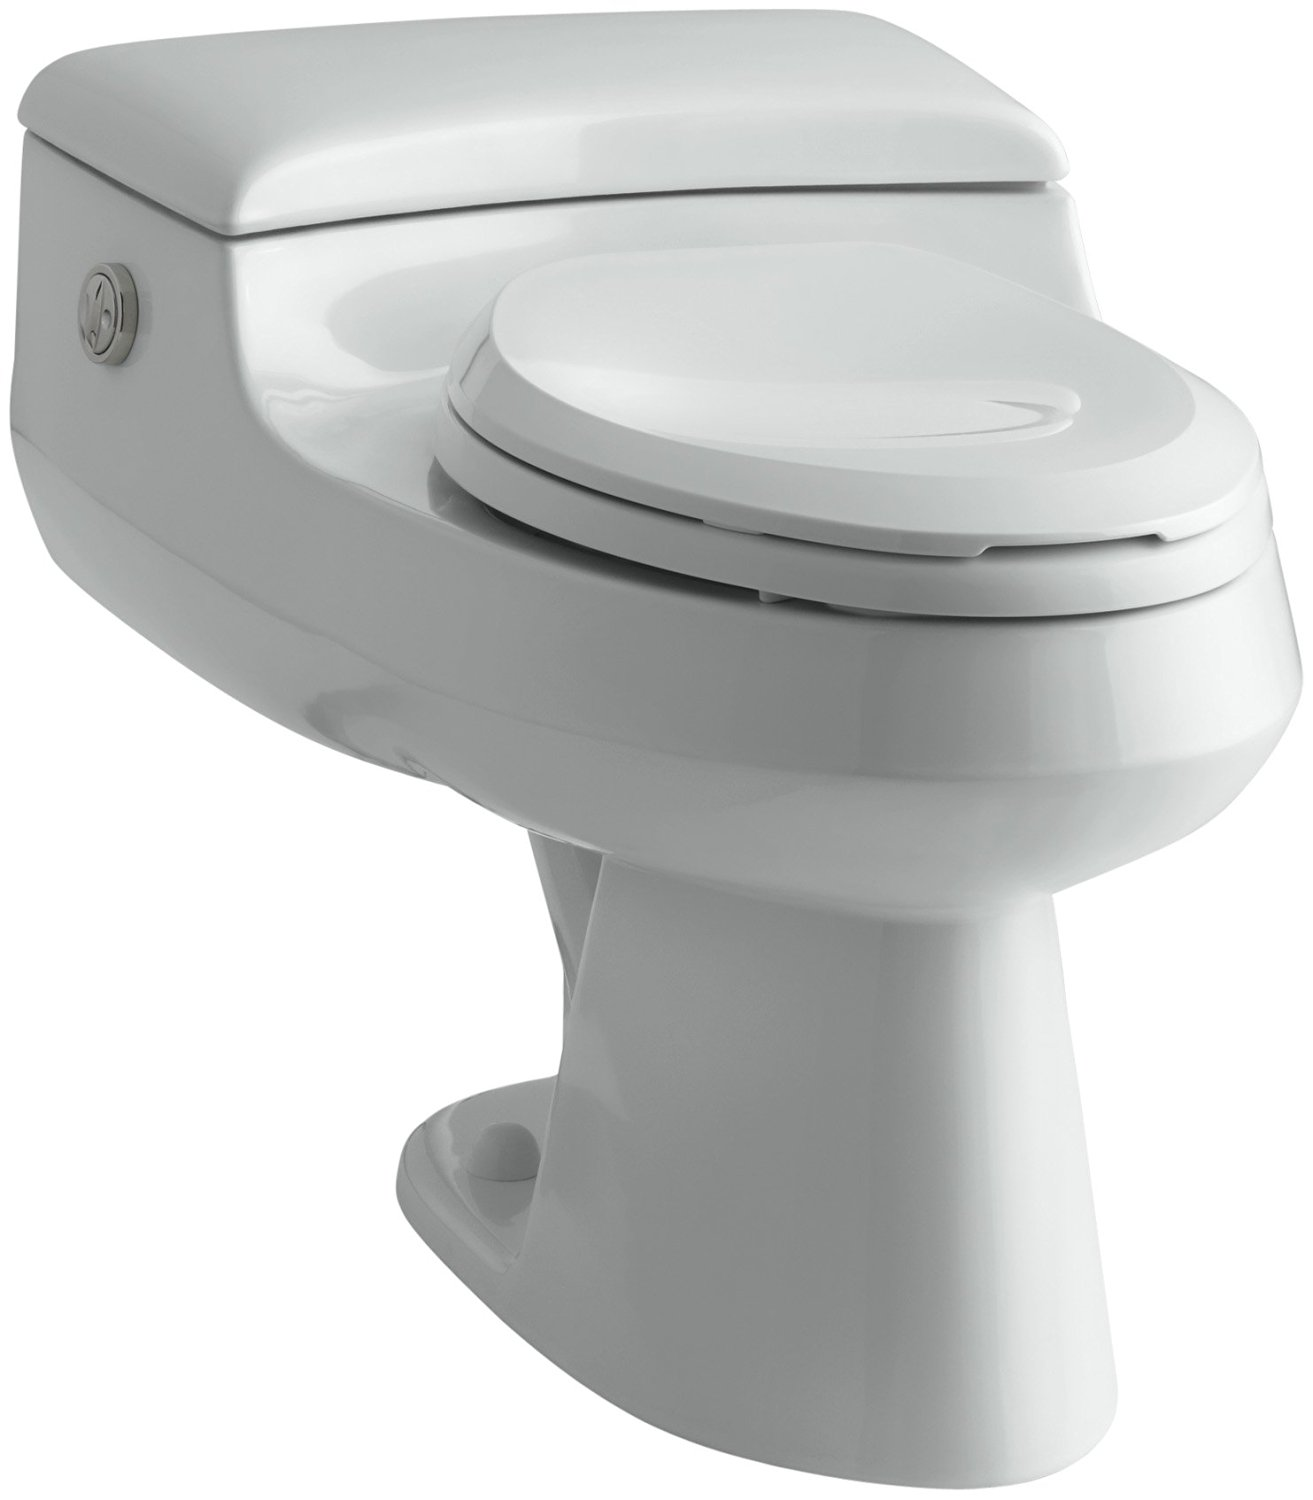 Best toilet on the market reviews - Kohler San Raphael Toilet Review